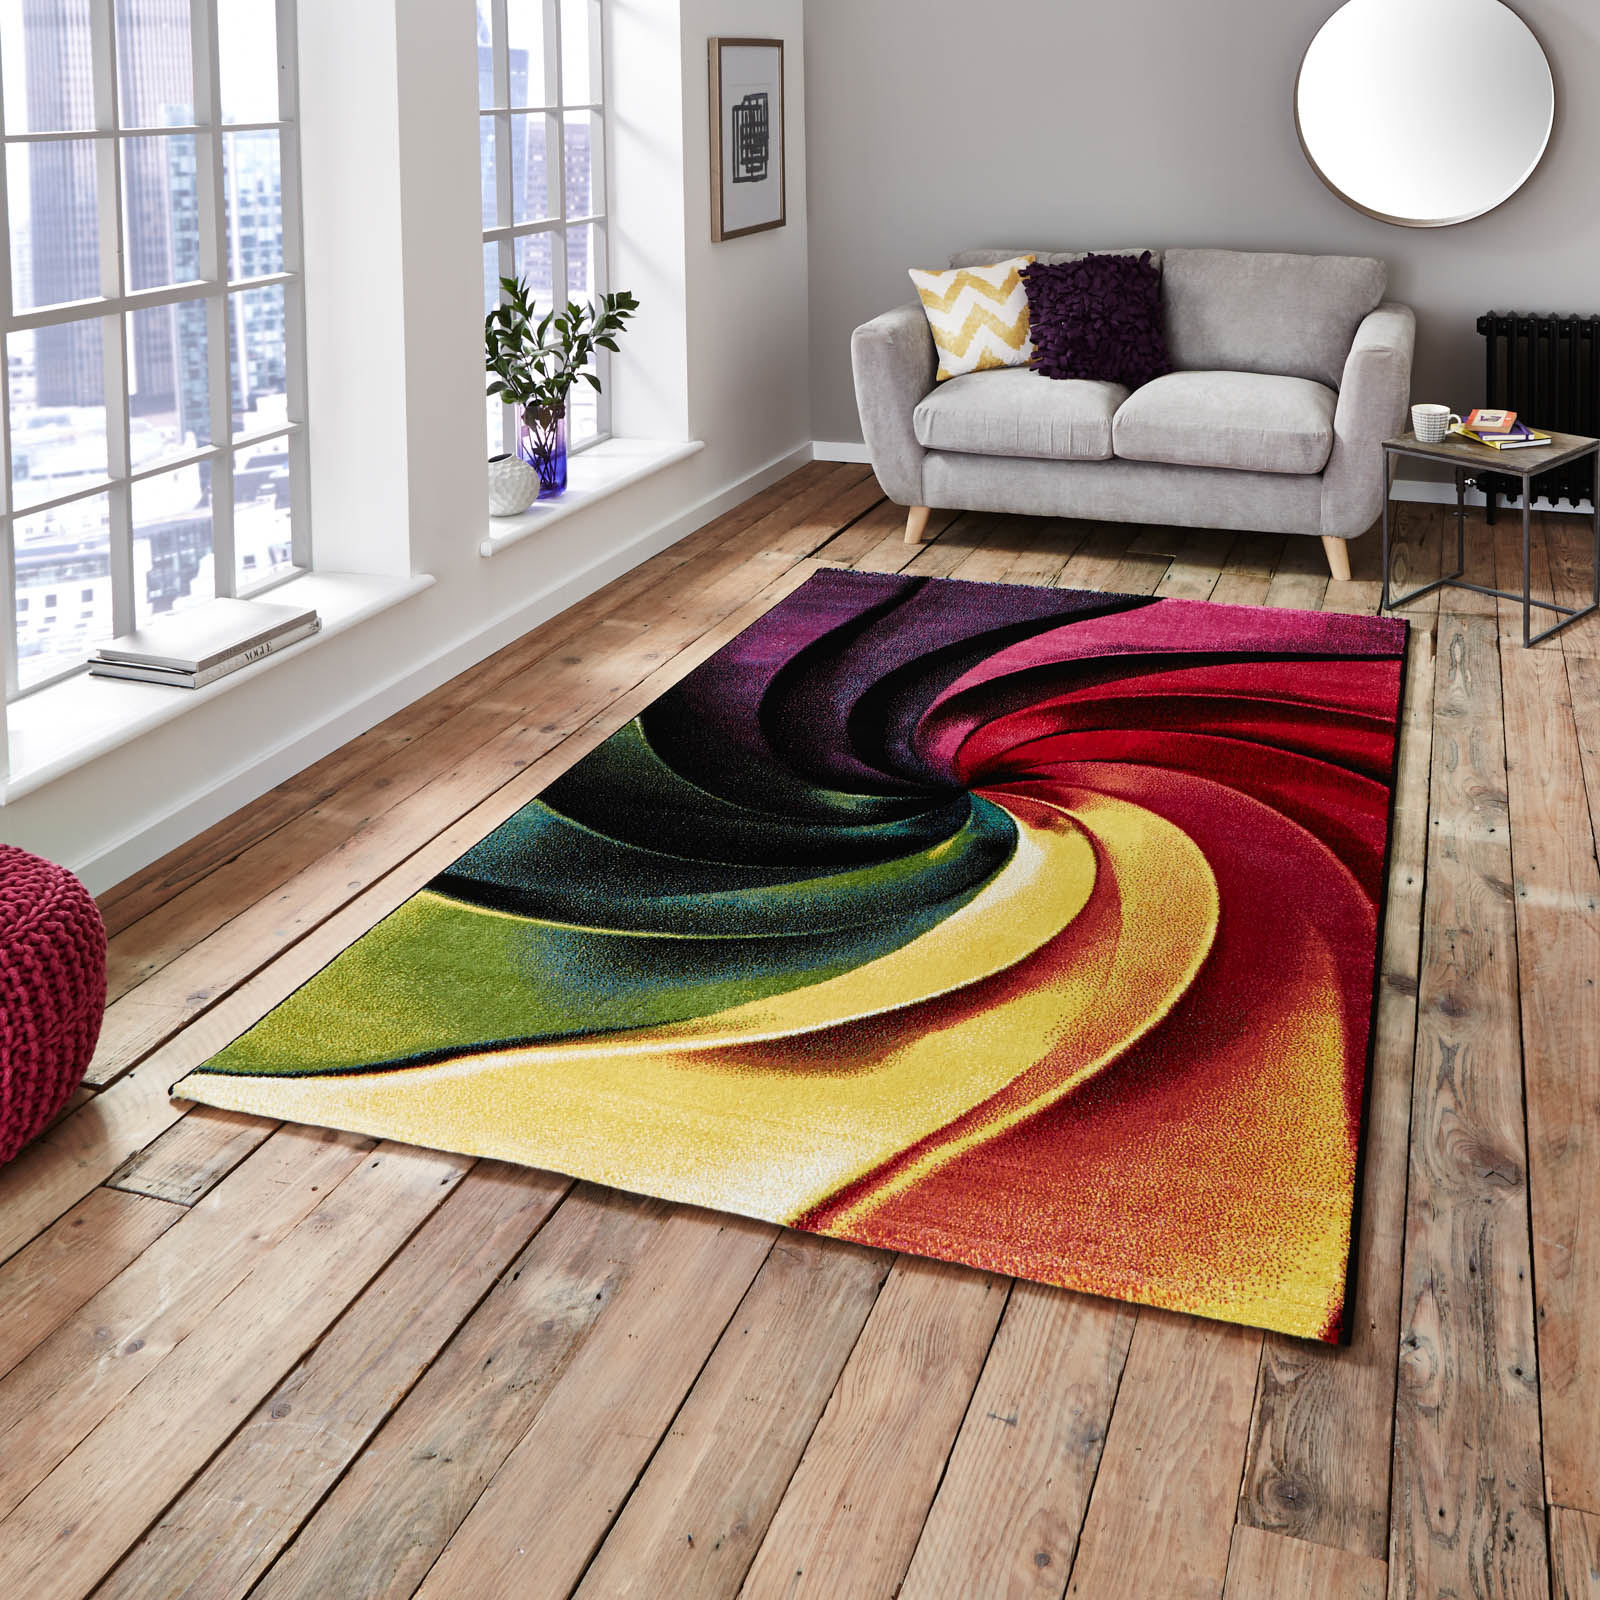 Spring competition Multi-coloured rectangular rug in a living room setting